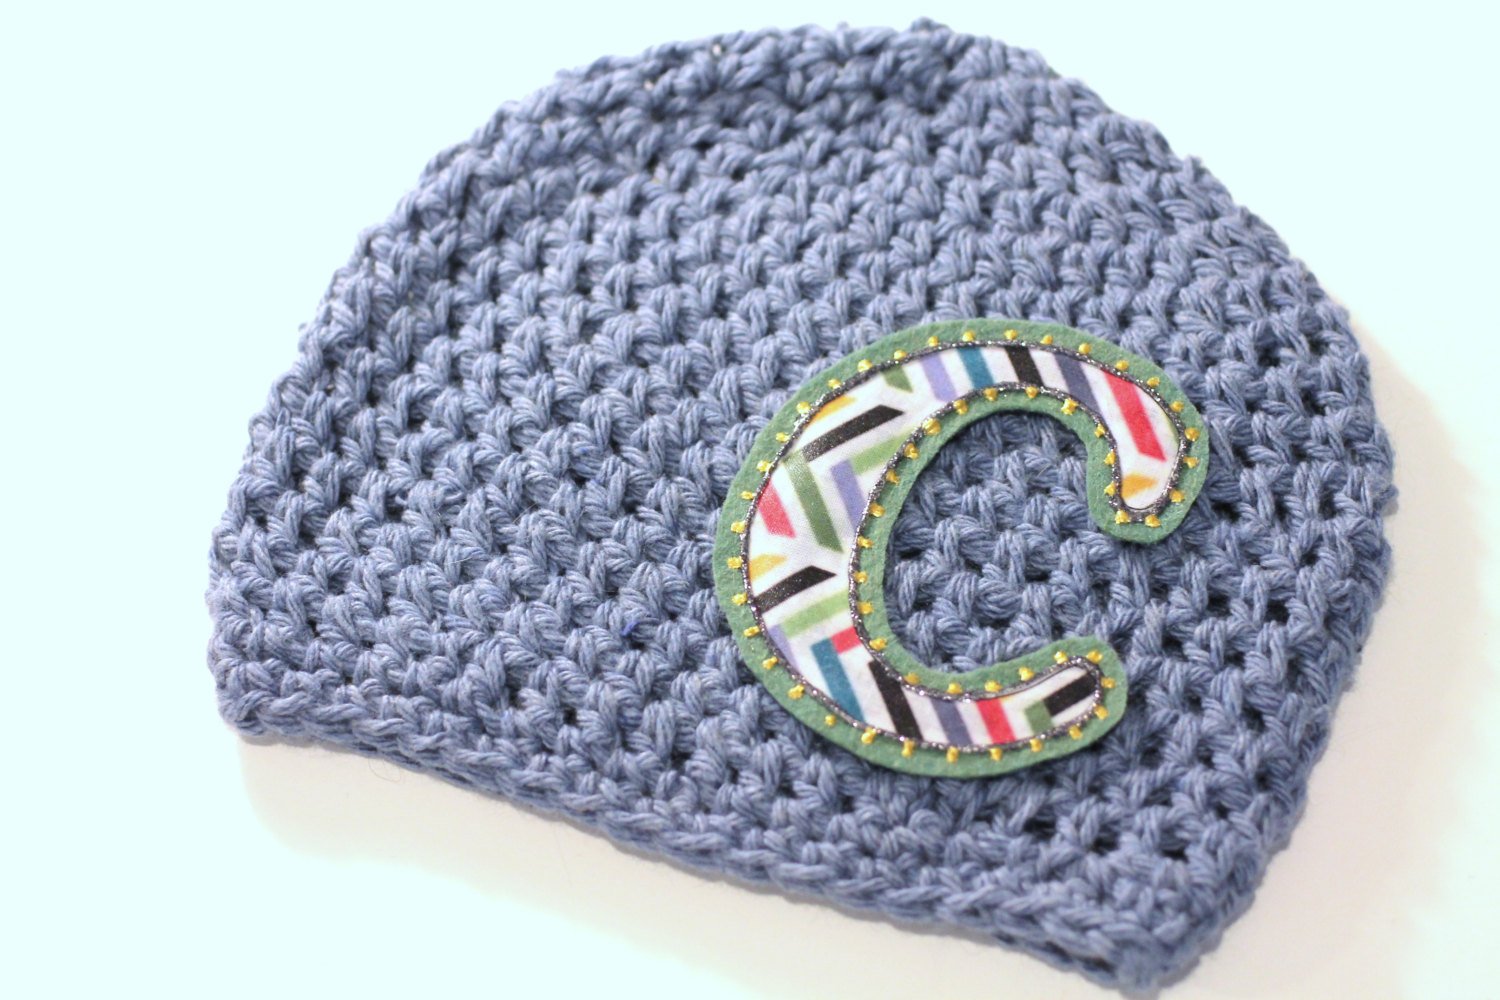 634b689e46653 Boys Hat, Personalized Baby Hat, Baby Beanie, Initials, Monogram, Baby  Gift, Photo Prop, Cotton Crochet Hat from my bubbala